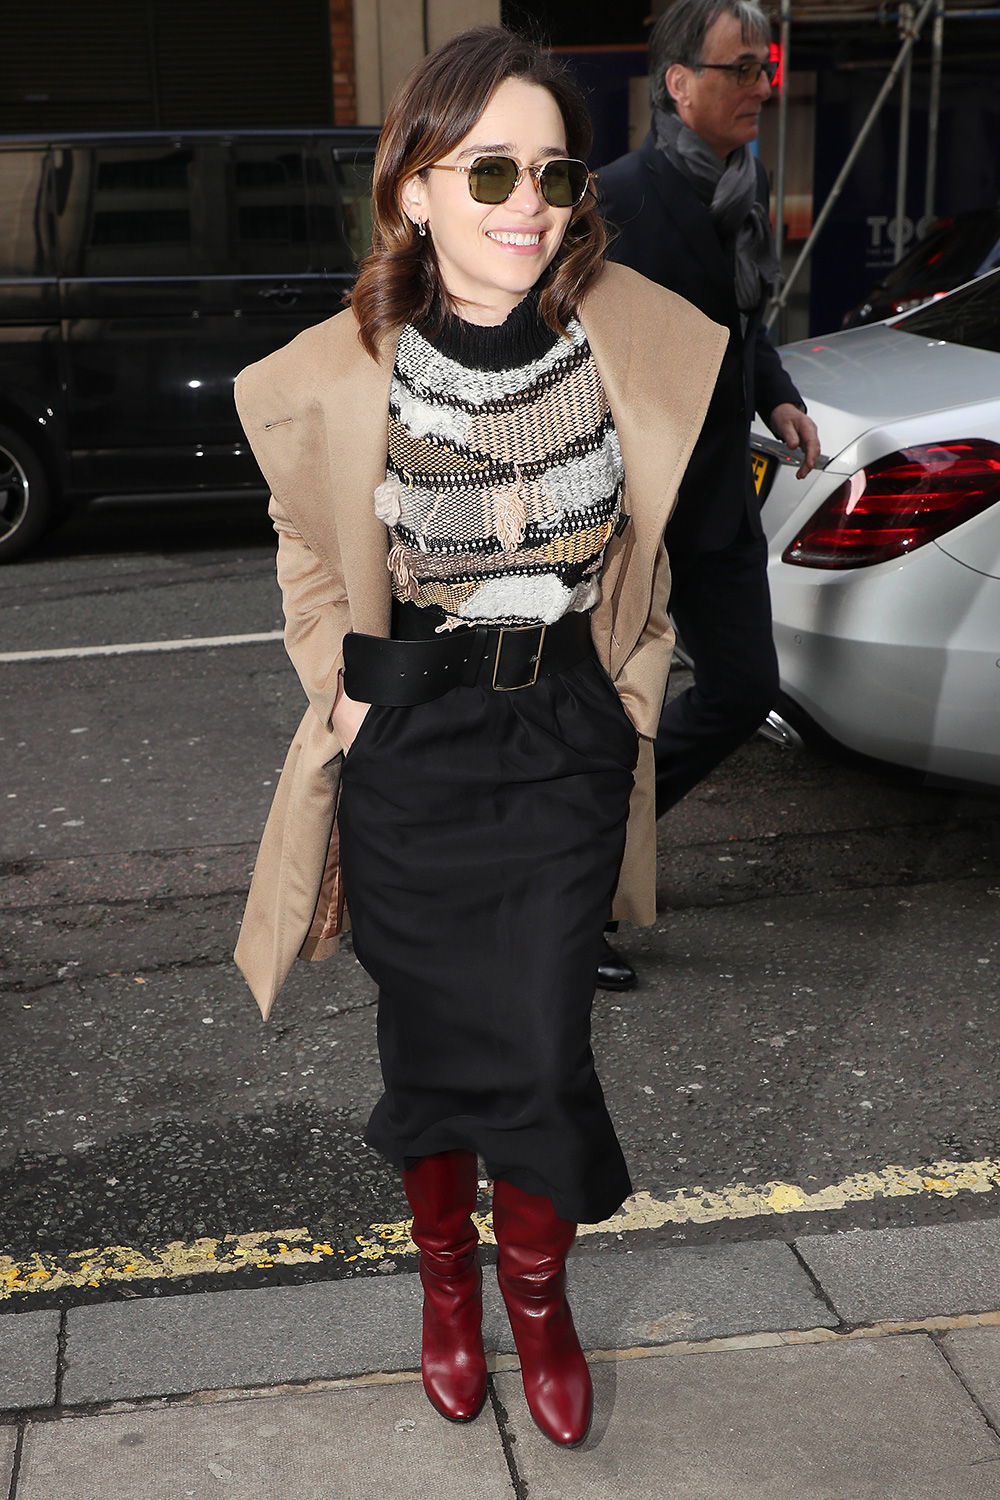 Emilia Clarke arriving at BBC Radio 2 on March 03, 2020 in London, England